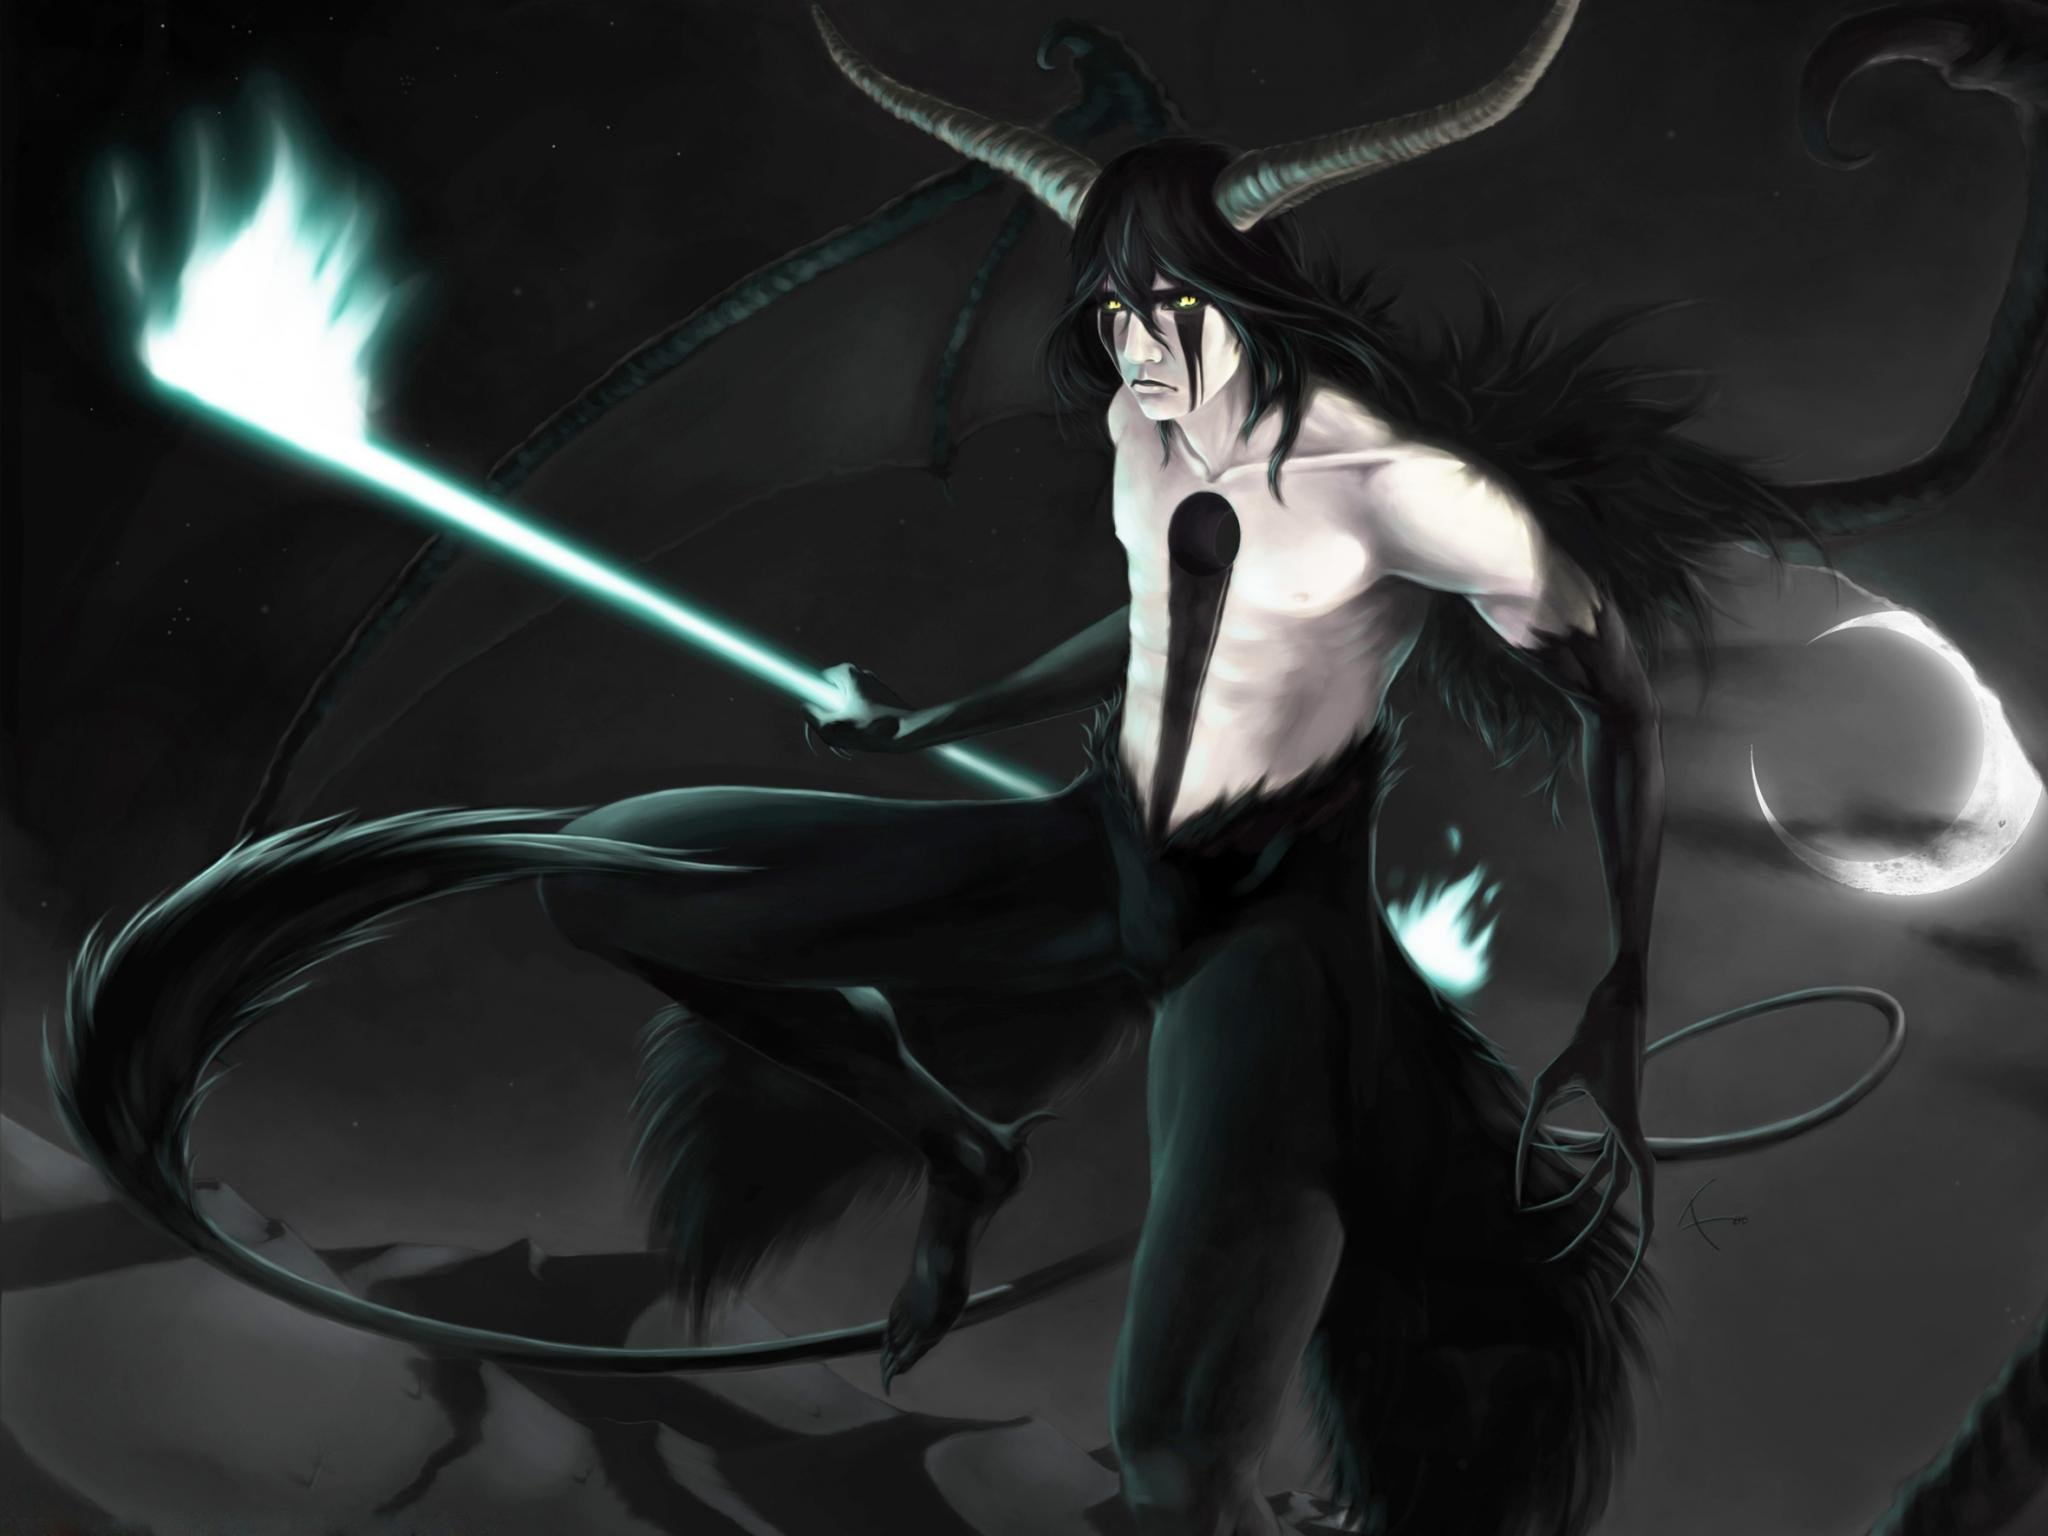 Awesome Ulquiorra Cifer free wallpaper ID:419198 for hd 2048x1536 computer